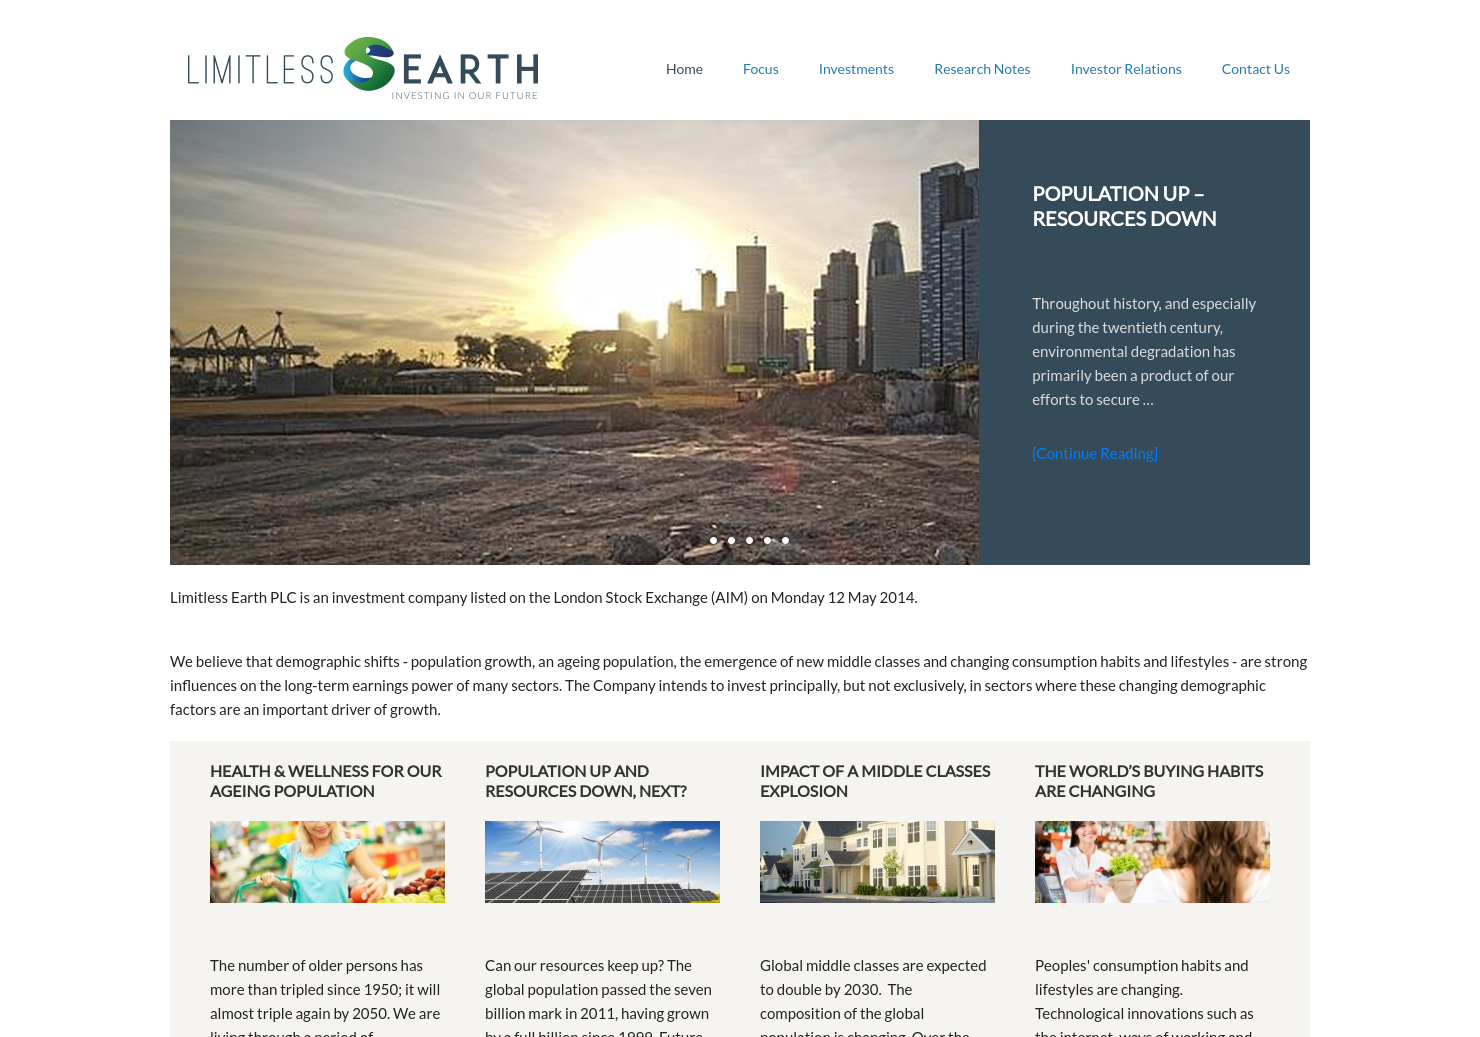 Limitless Earth Home Page